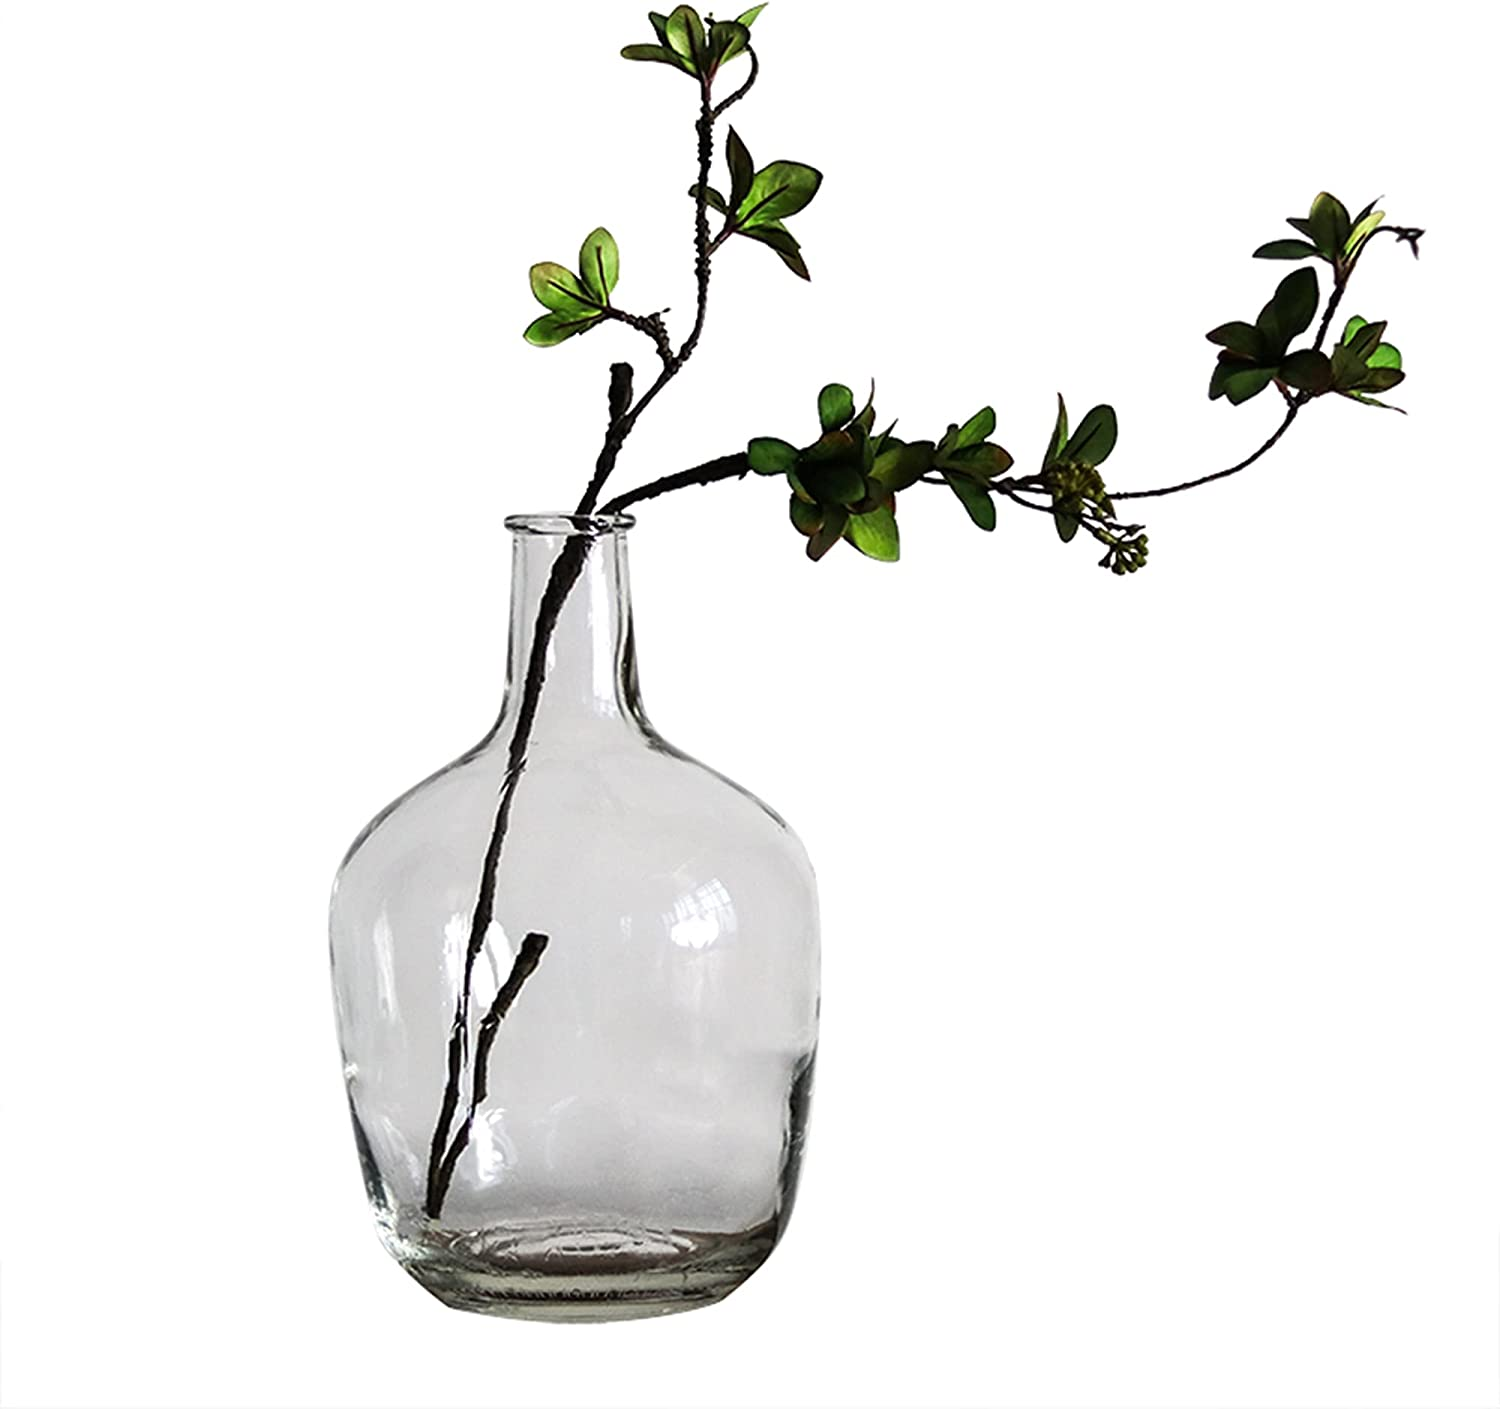 BUICCE Handbrown Transparent Glass Vases for Decor Large Bubble Vintage Floor Vase Clear for Branches Faux Artificial Flowers Tabletop Kitchen Home Indoor Decoration.